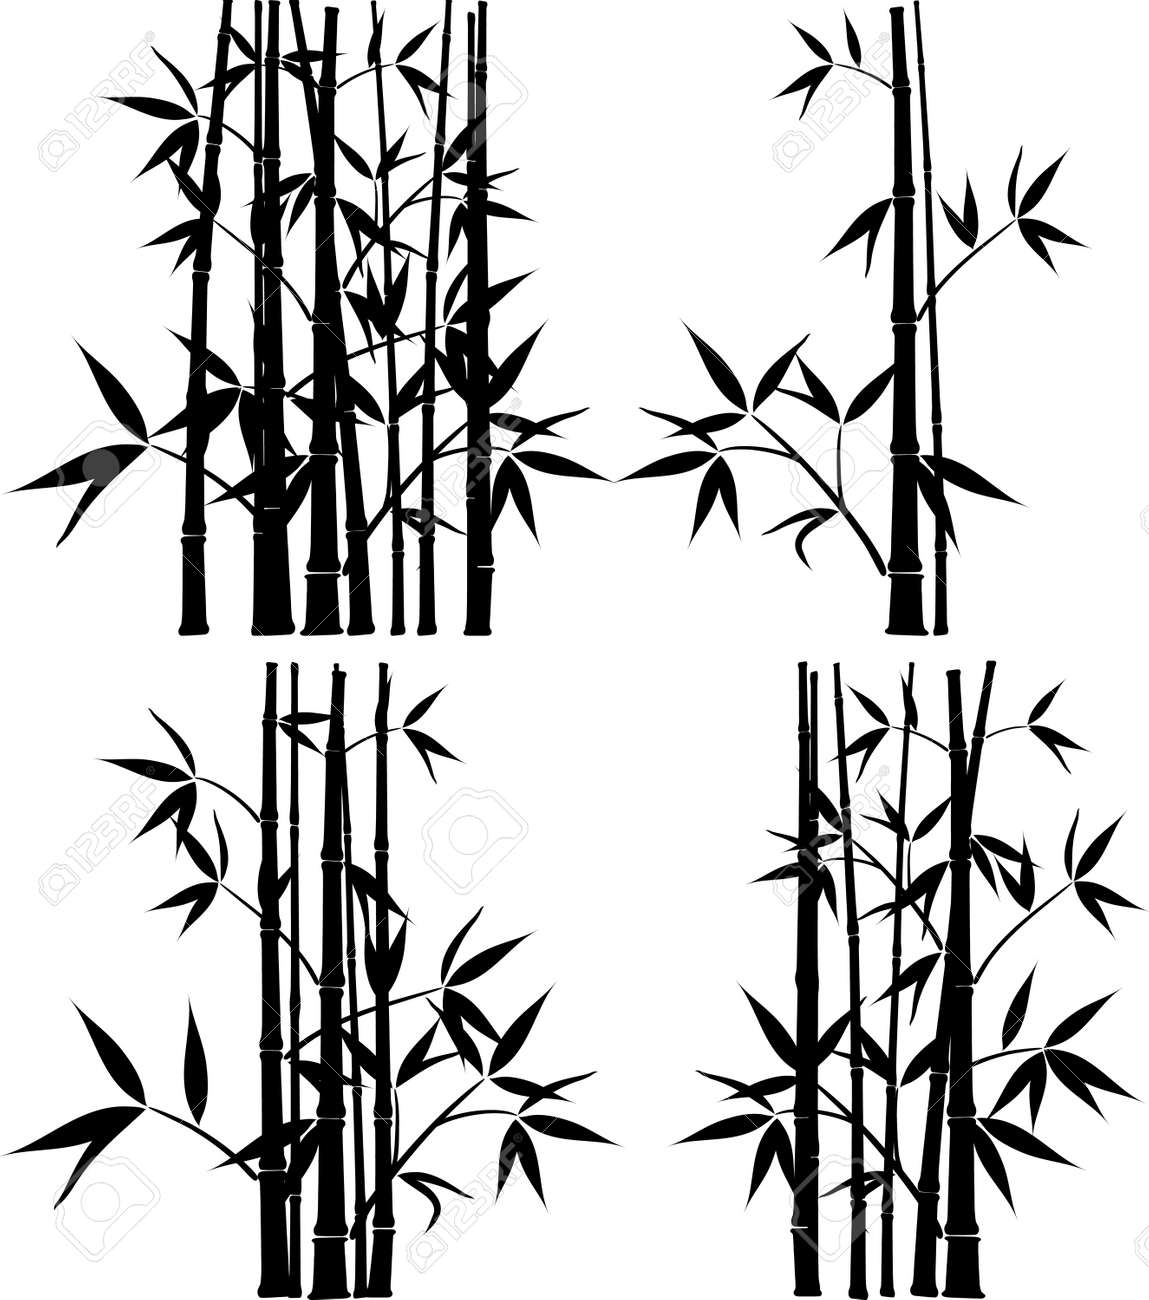 bamboo vector illustration royalty free cliparts vectors and stock illustration image 8960734 bamboo vector illustration